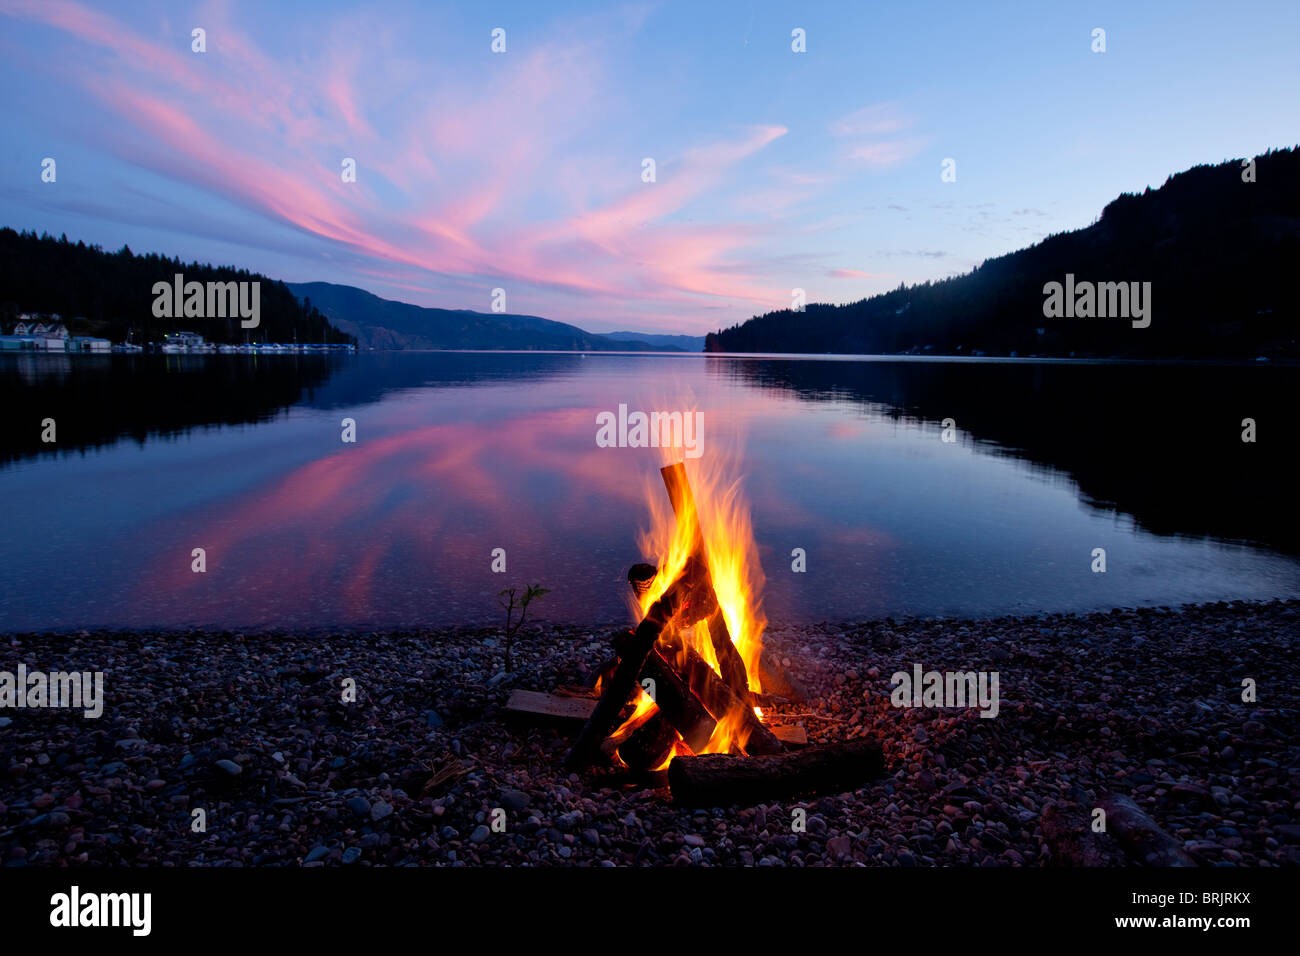 Campfire with sunset reflected on the lake in Idaho. - Stock Image